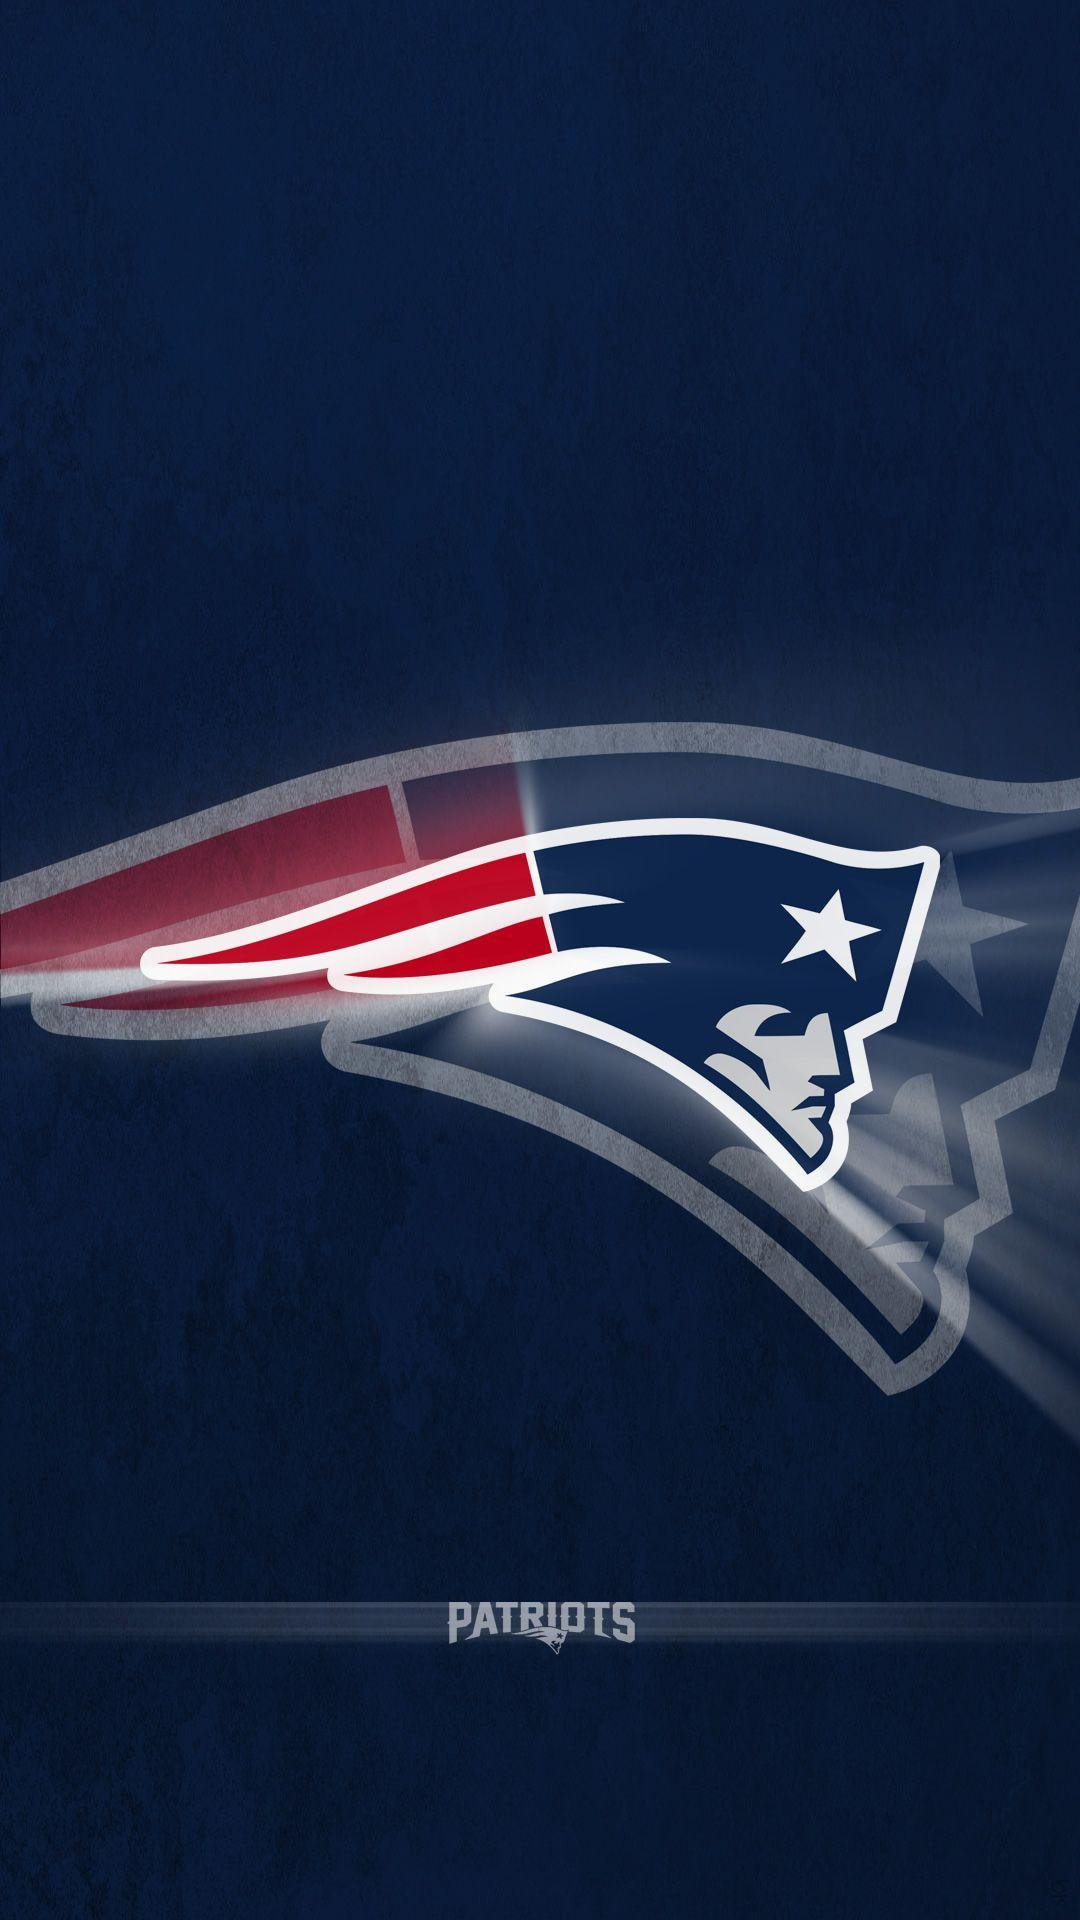 New Superbowl 2015 or Superbowl XLIX wallpaper – New England Patriots